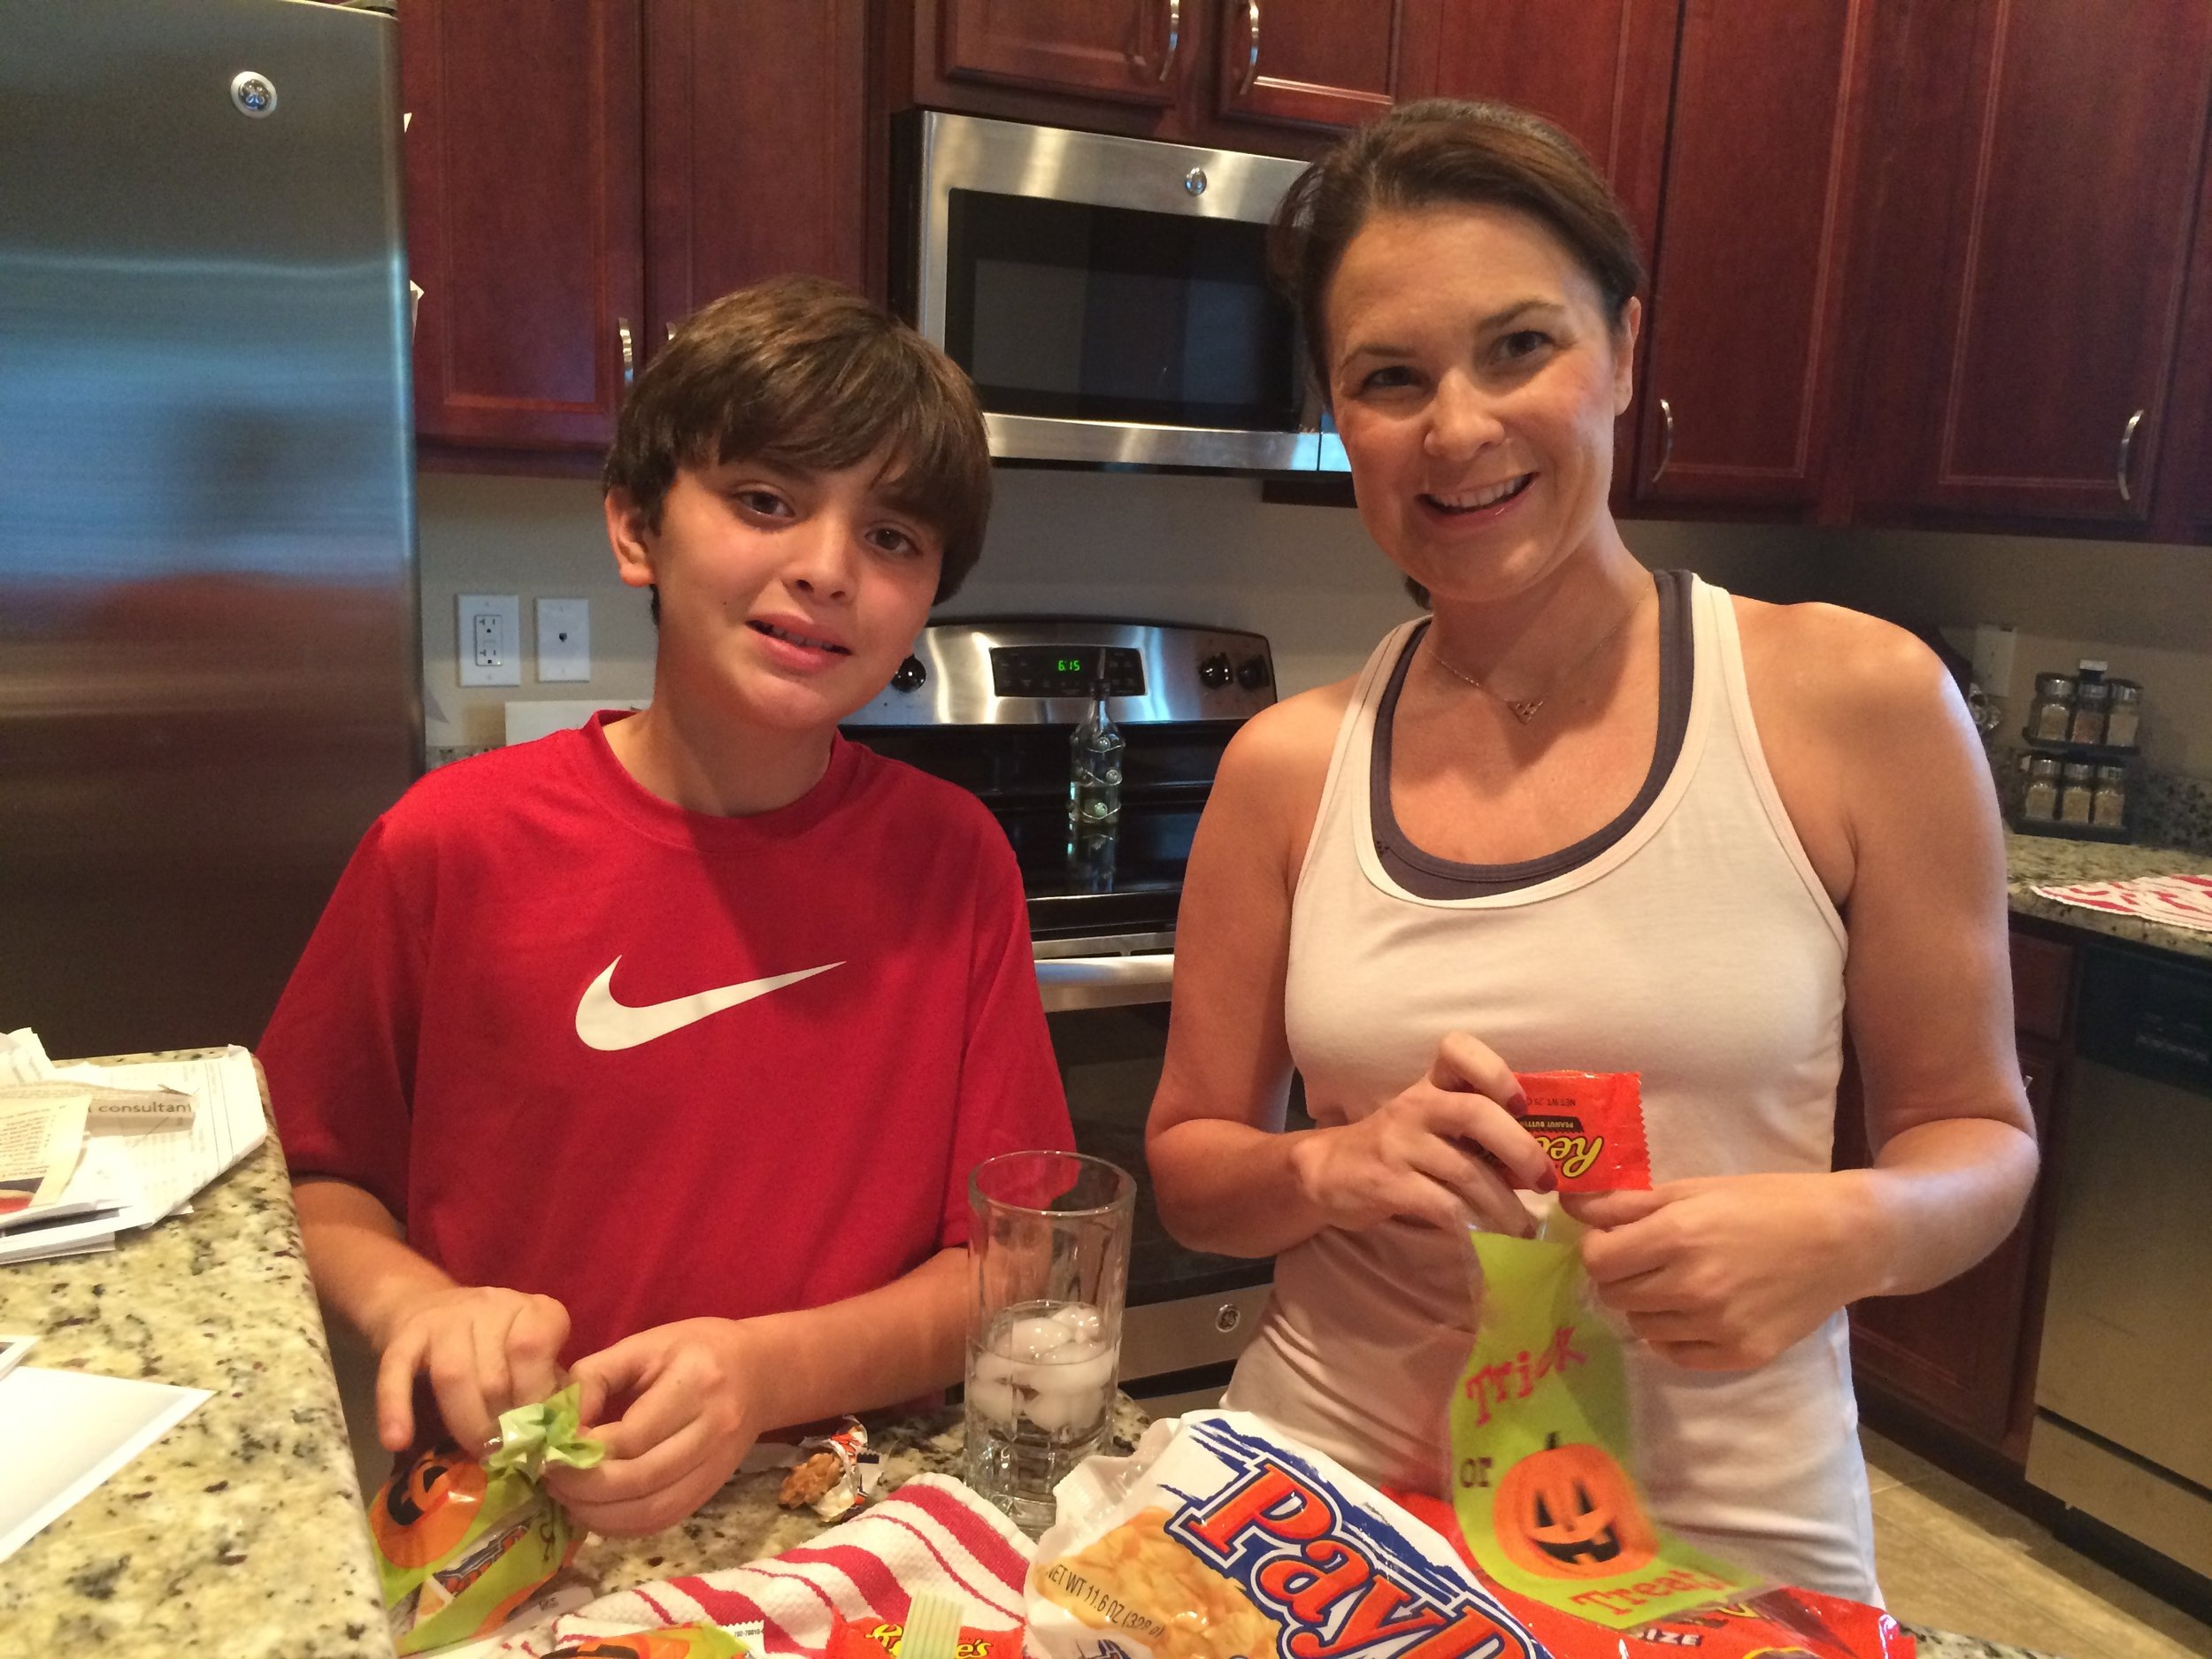 My nephew and me packaging up treats to advertise for a local non-profit